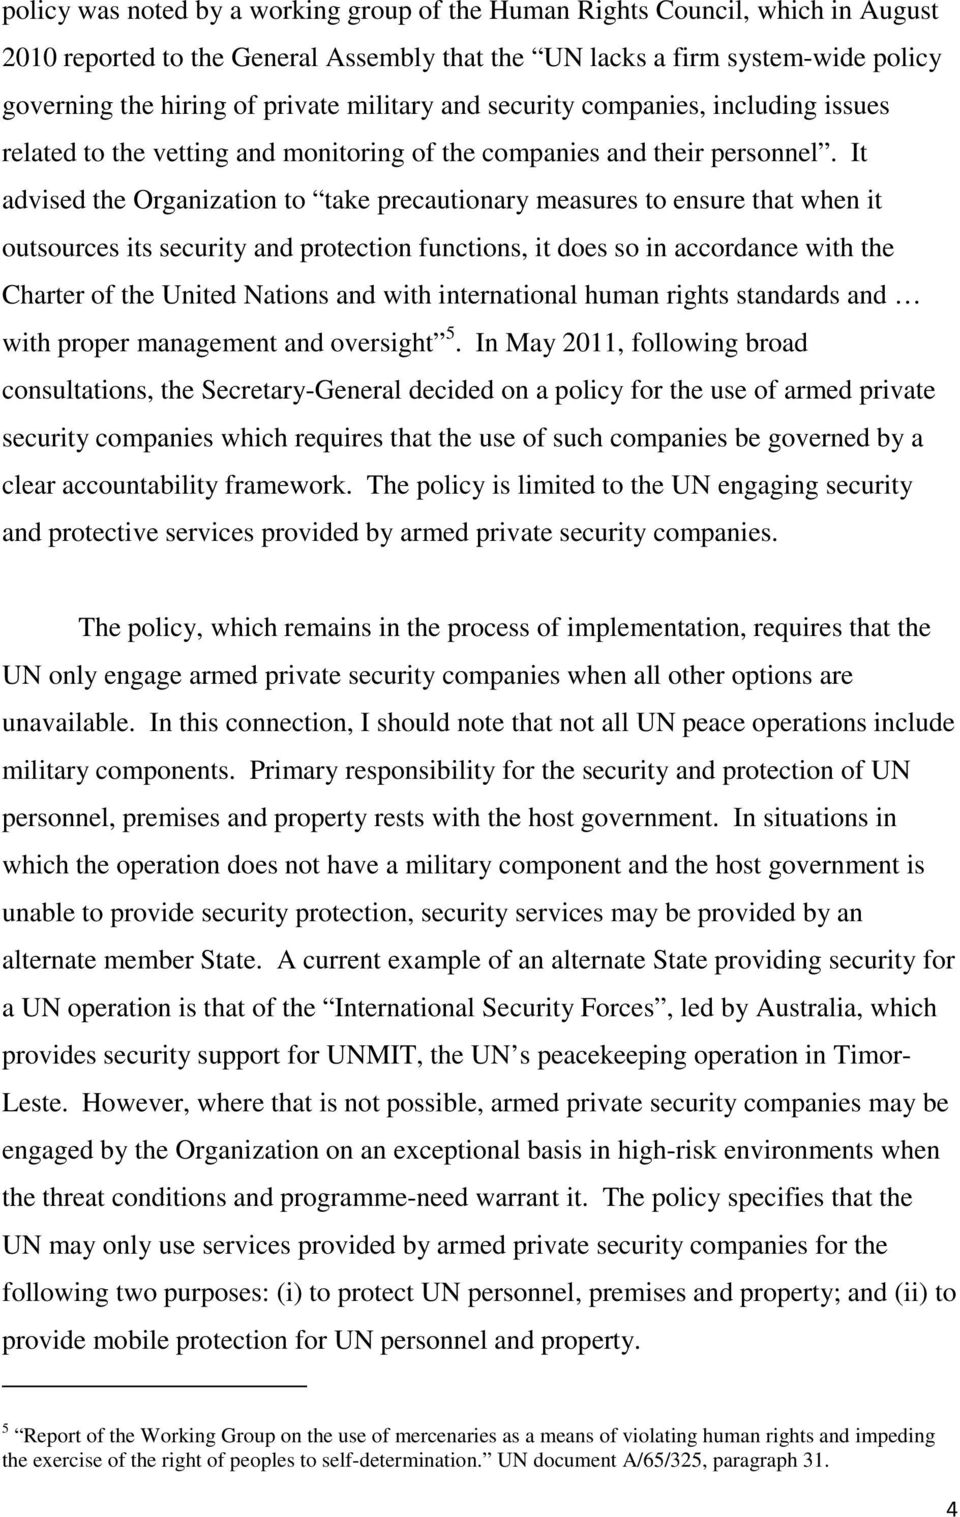 It advised the Organization to take precautionary measures to ensure that when it outsources its security and protection functions, it does so in accordance with the Charter of the United Nations and